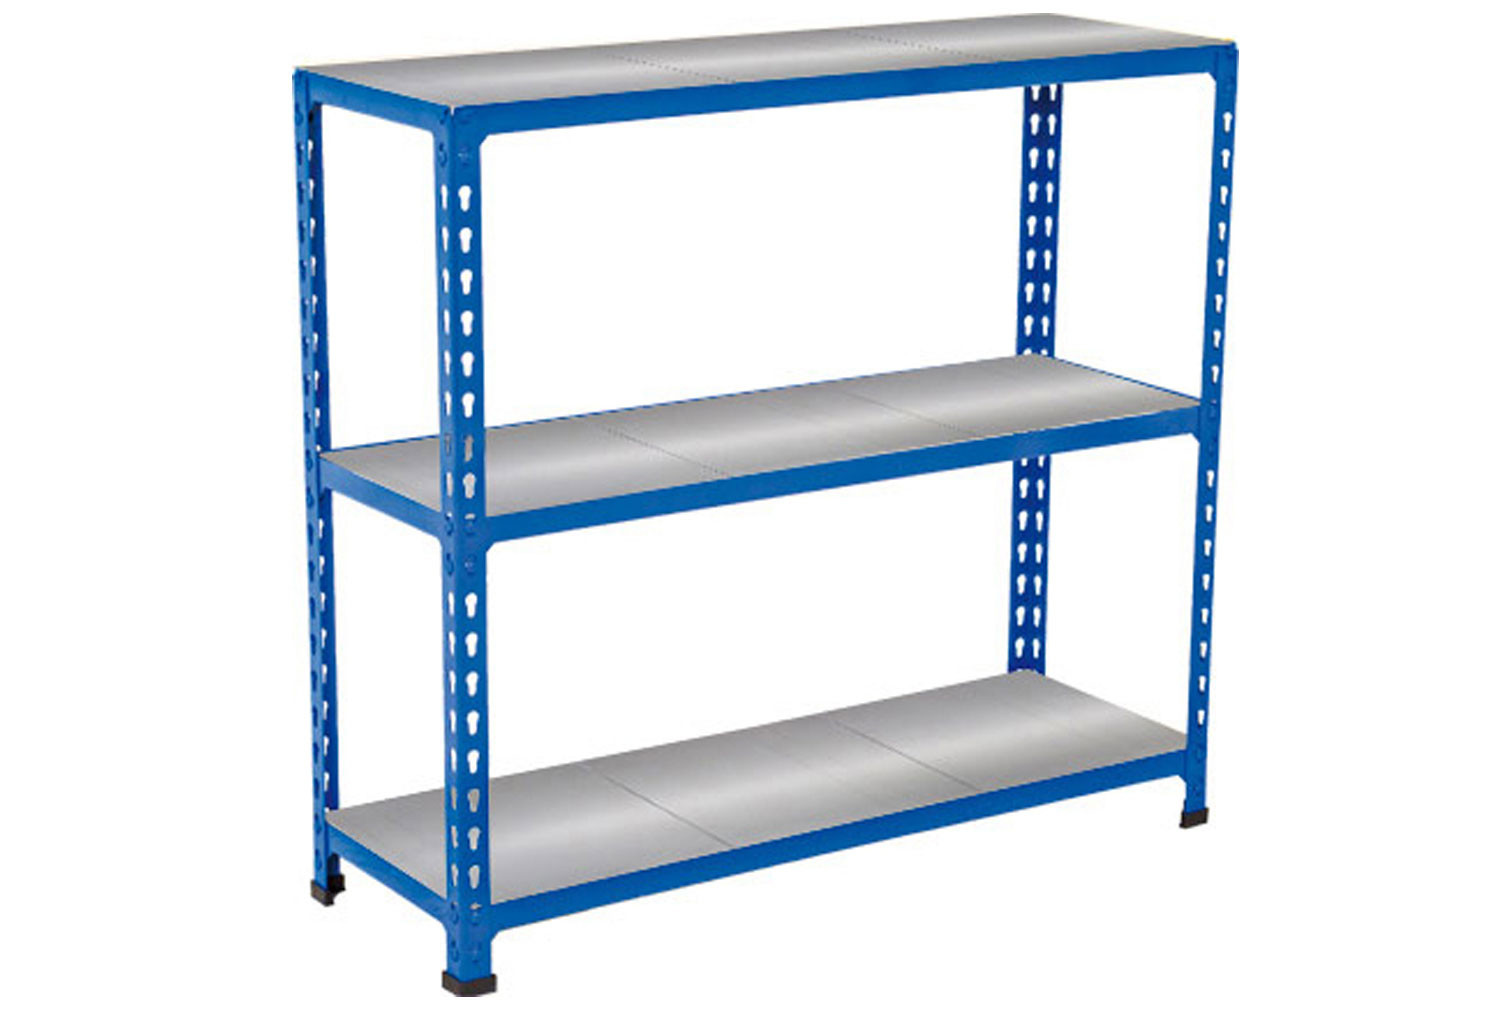 Rapid 2 shelving with 3 galvanized shelves 915wx990h (blue)